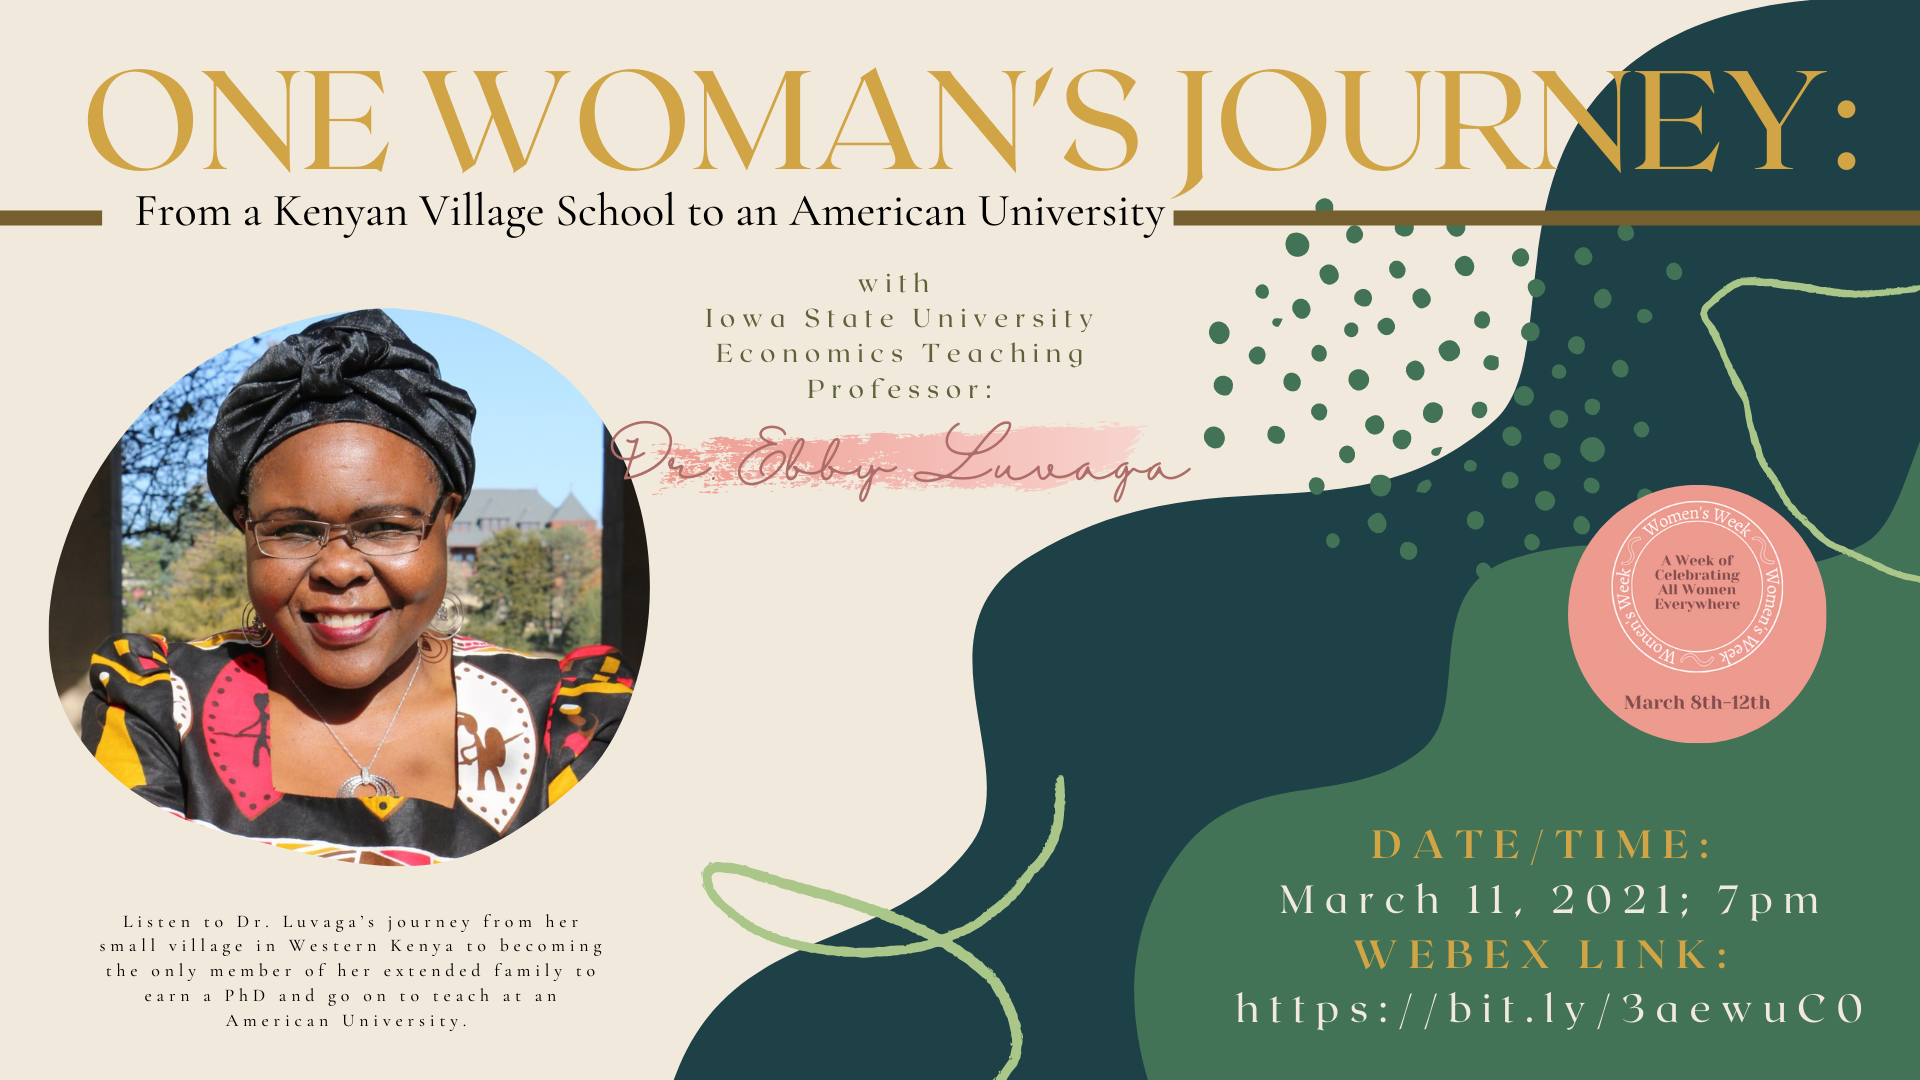 One Woman's Journey: From a Kenyan Village School to an American University